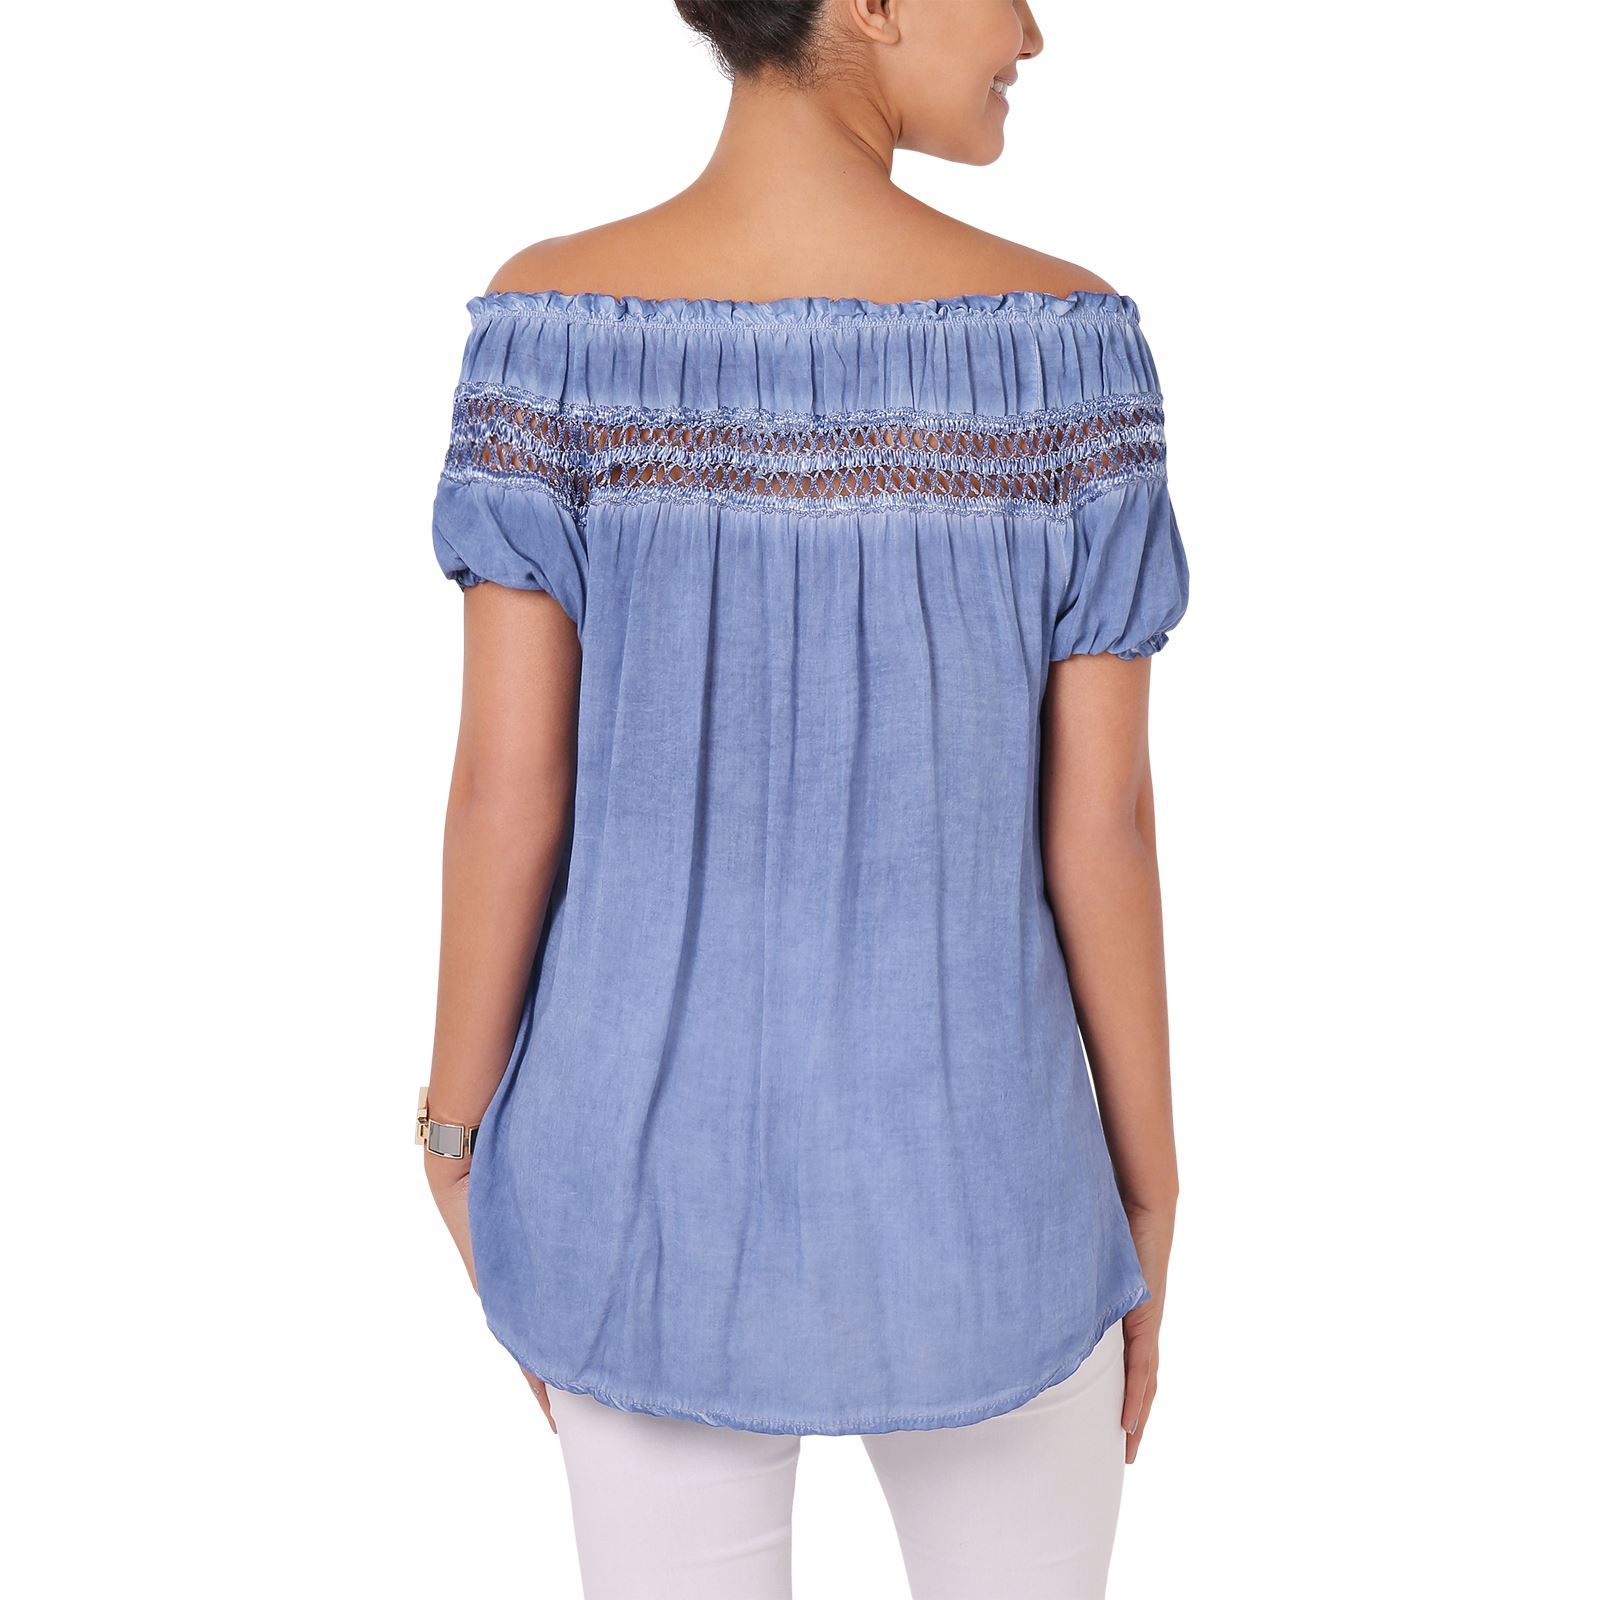 Womens-Off-Shoulder-Blouse-Gypsy-Boho-Cotton-T-Shirt-Top-Tunic-Summer-Loose-Fit thumbnail 7